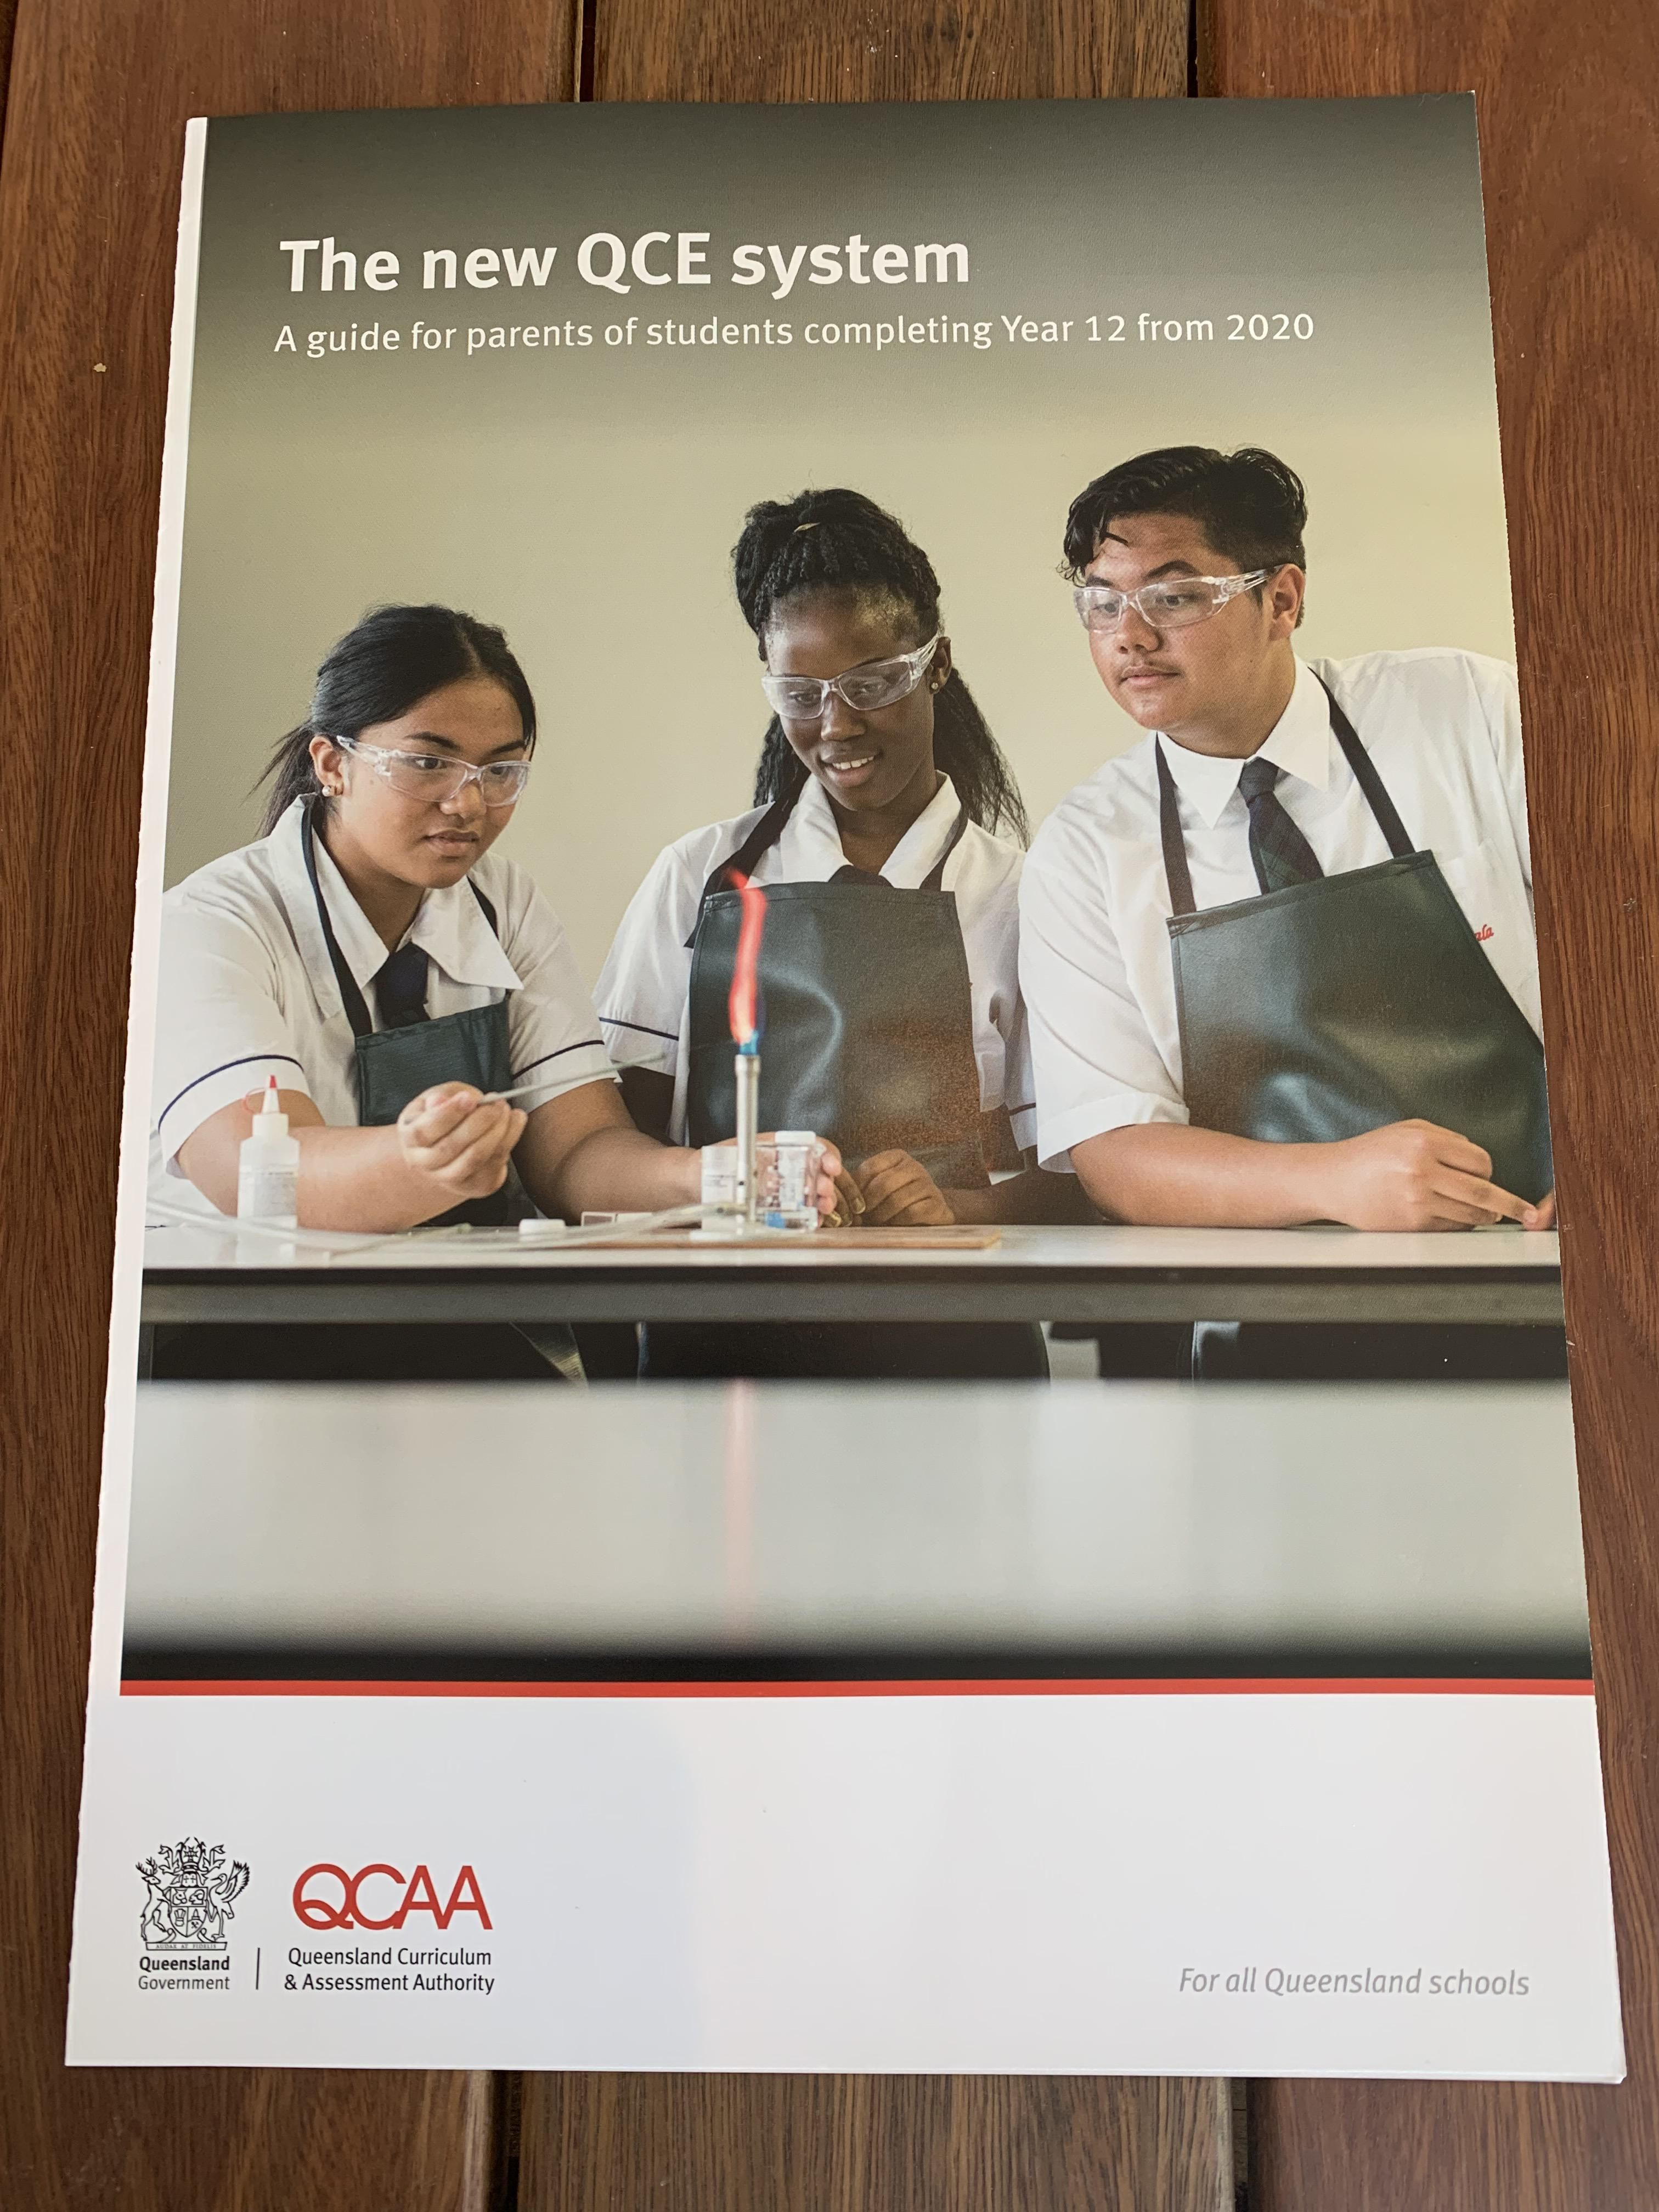 The kid on the right successfully trolled the State Education Department on the cover of a publication that has now been sent out to a million families